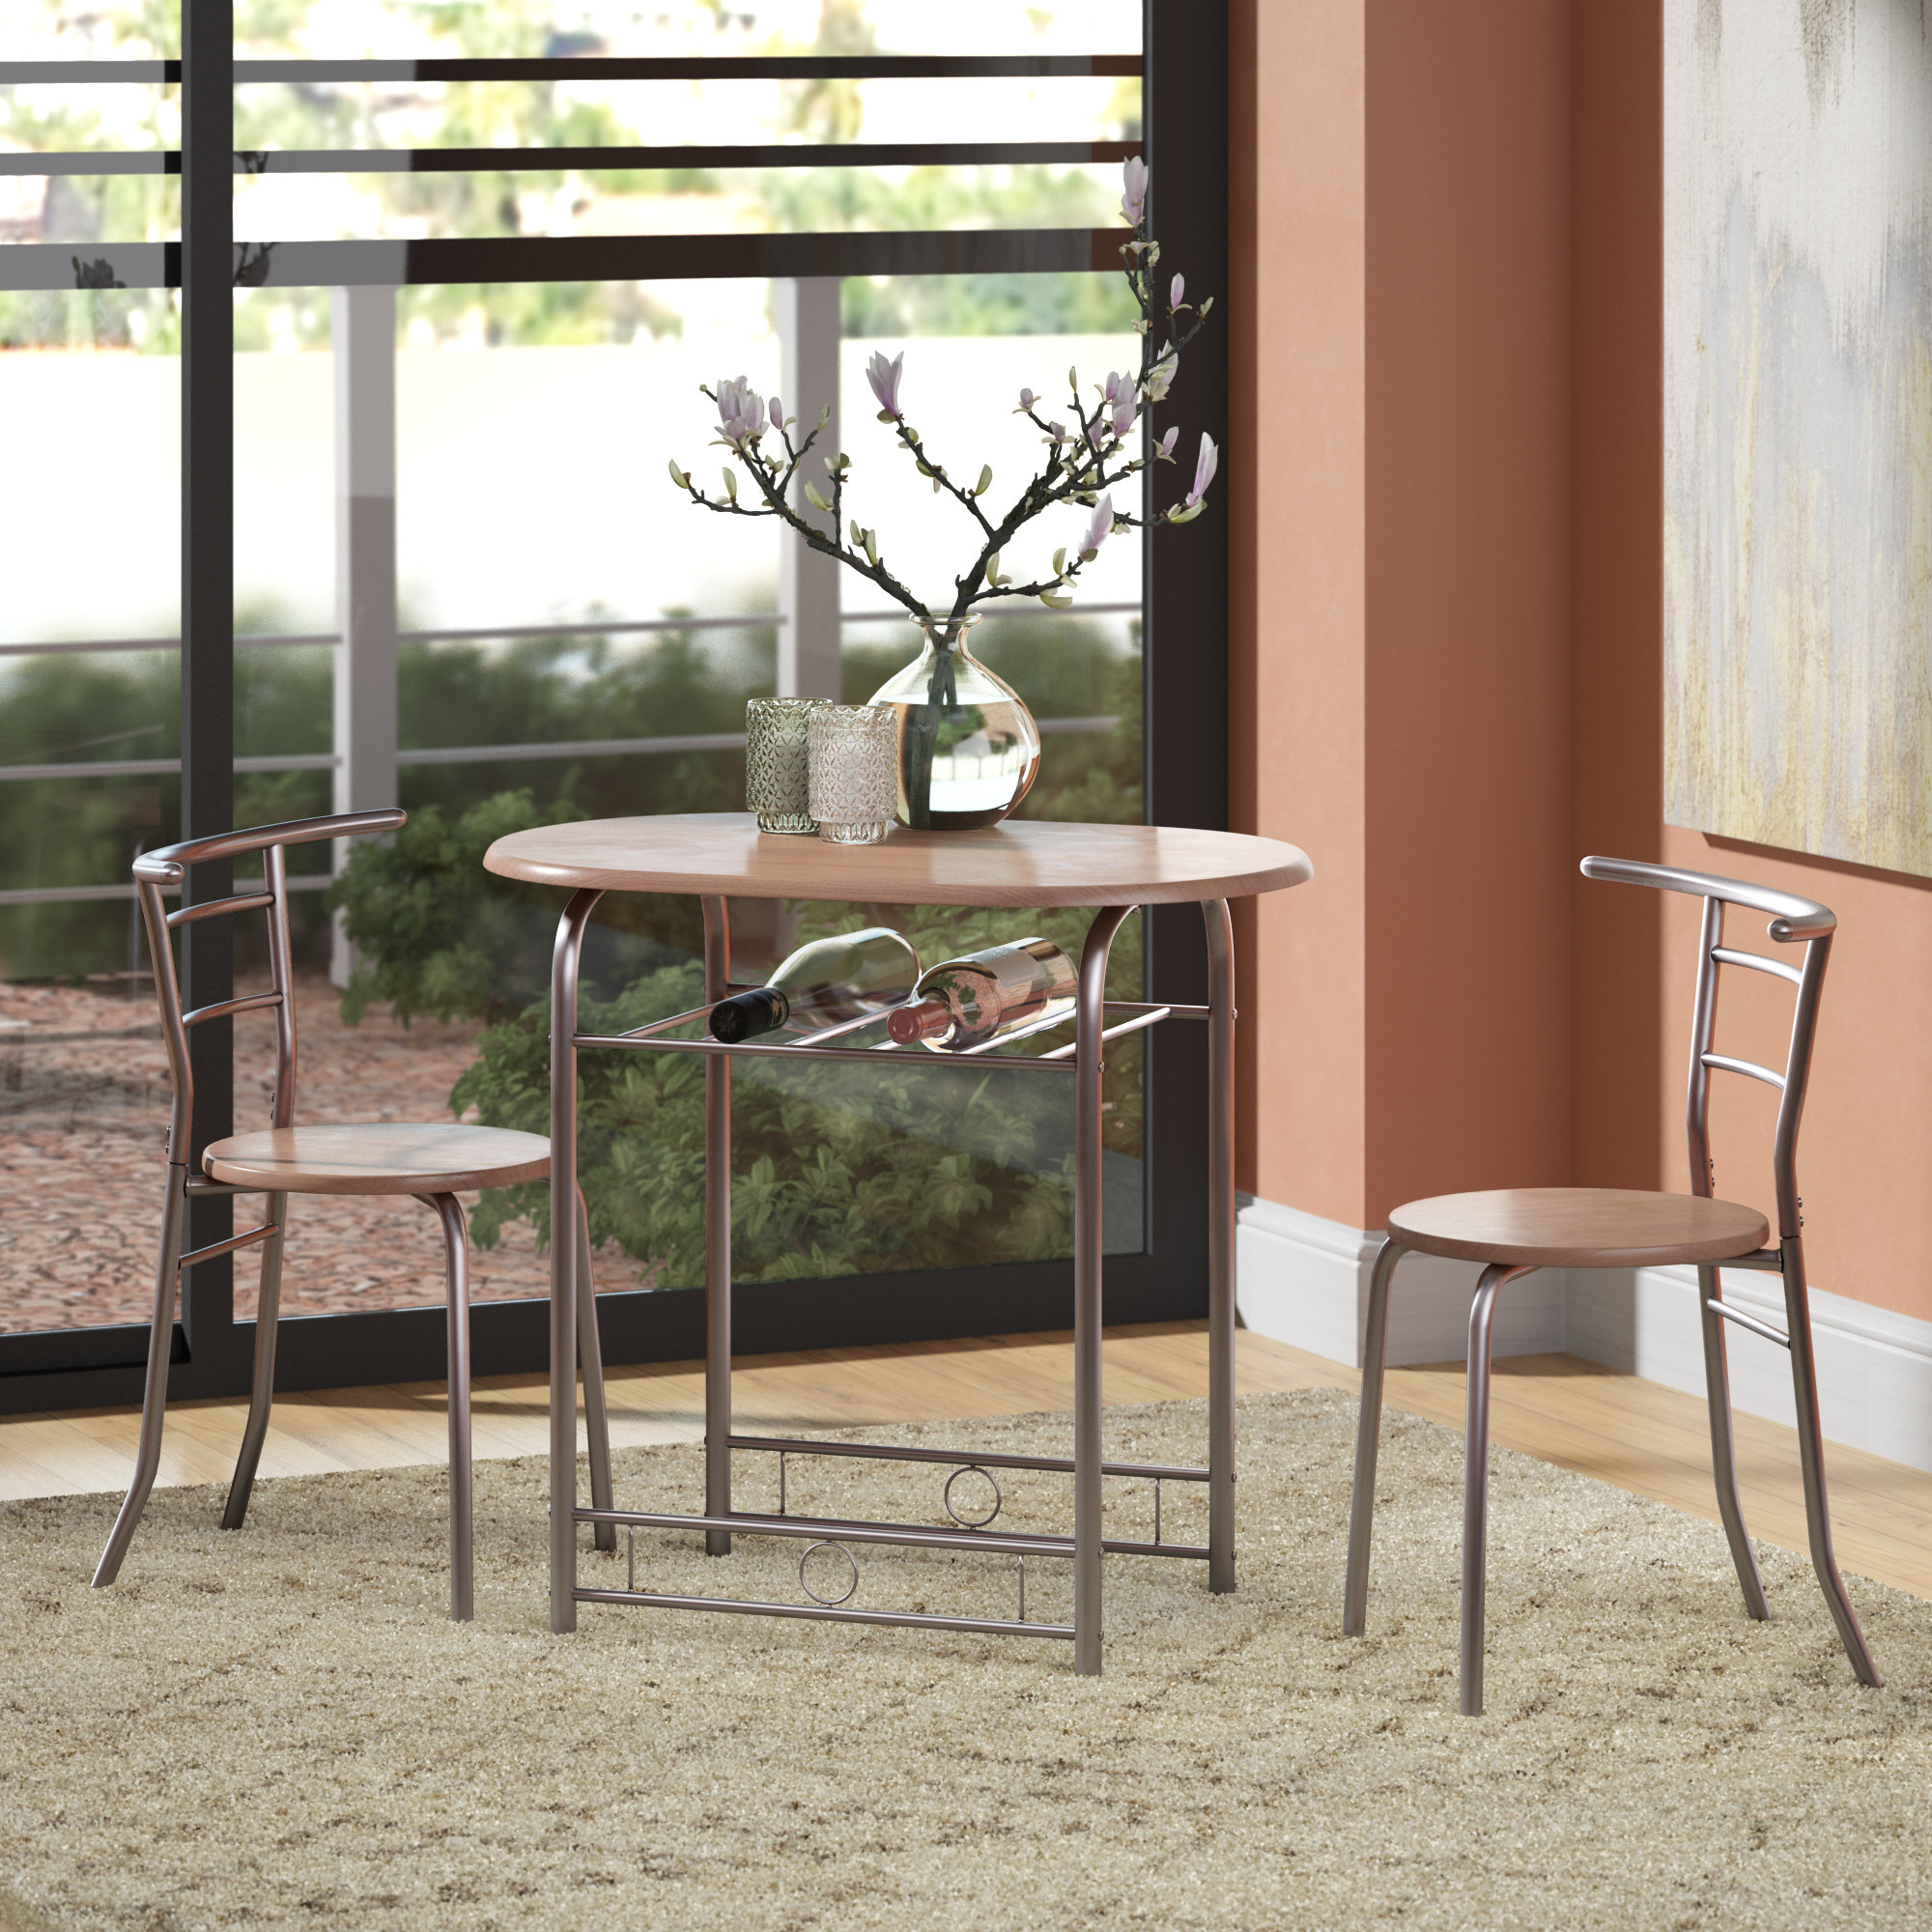 Latitude Run Shingadia Bistro 3 Piece Breakfast Nook Dining Set Intended For Most Recent 3 Piece Breakfast Nook Dinning Set (View 18 of 25)